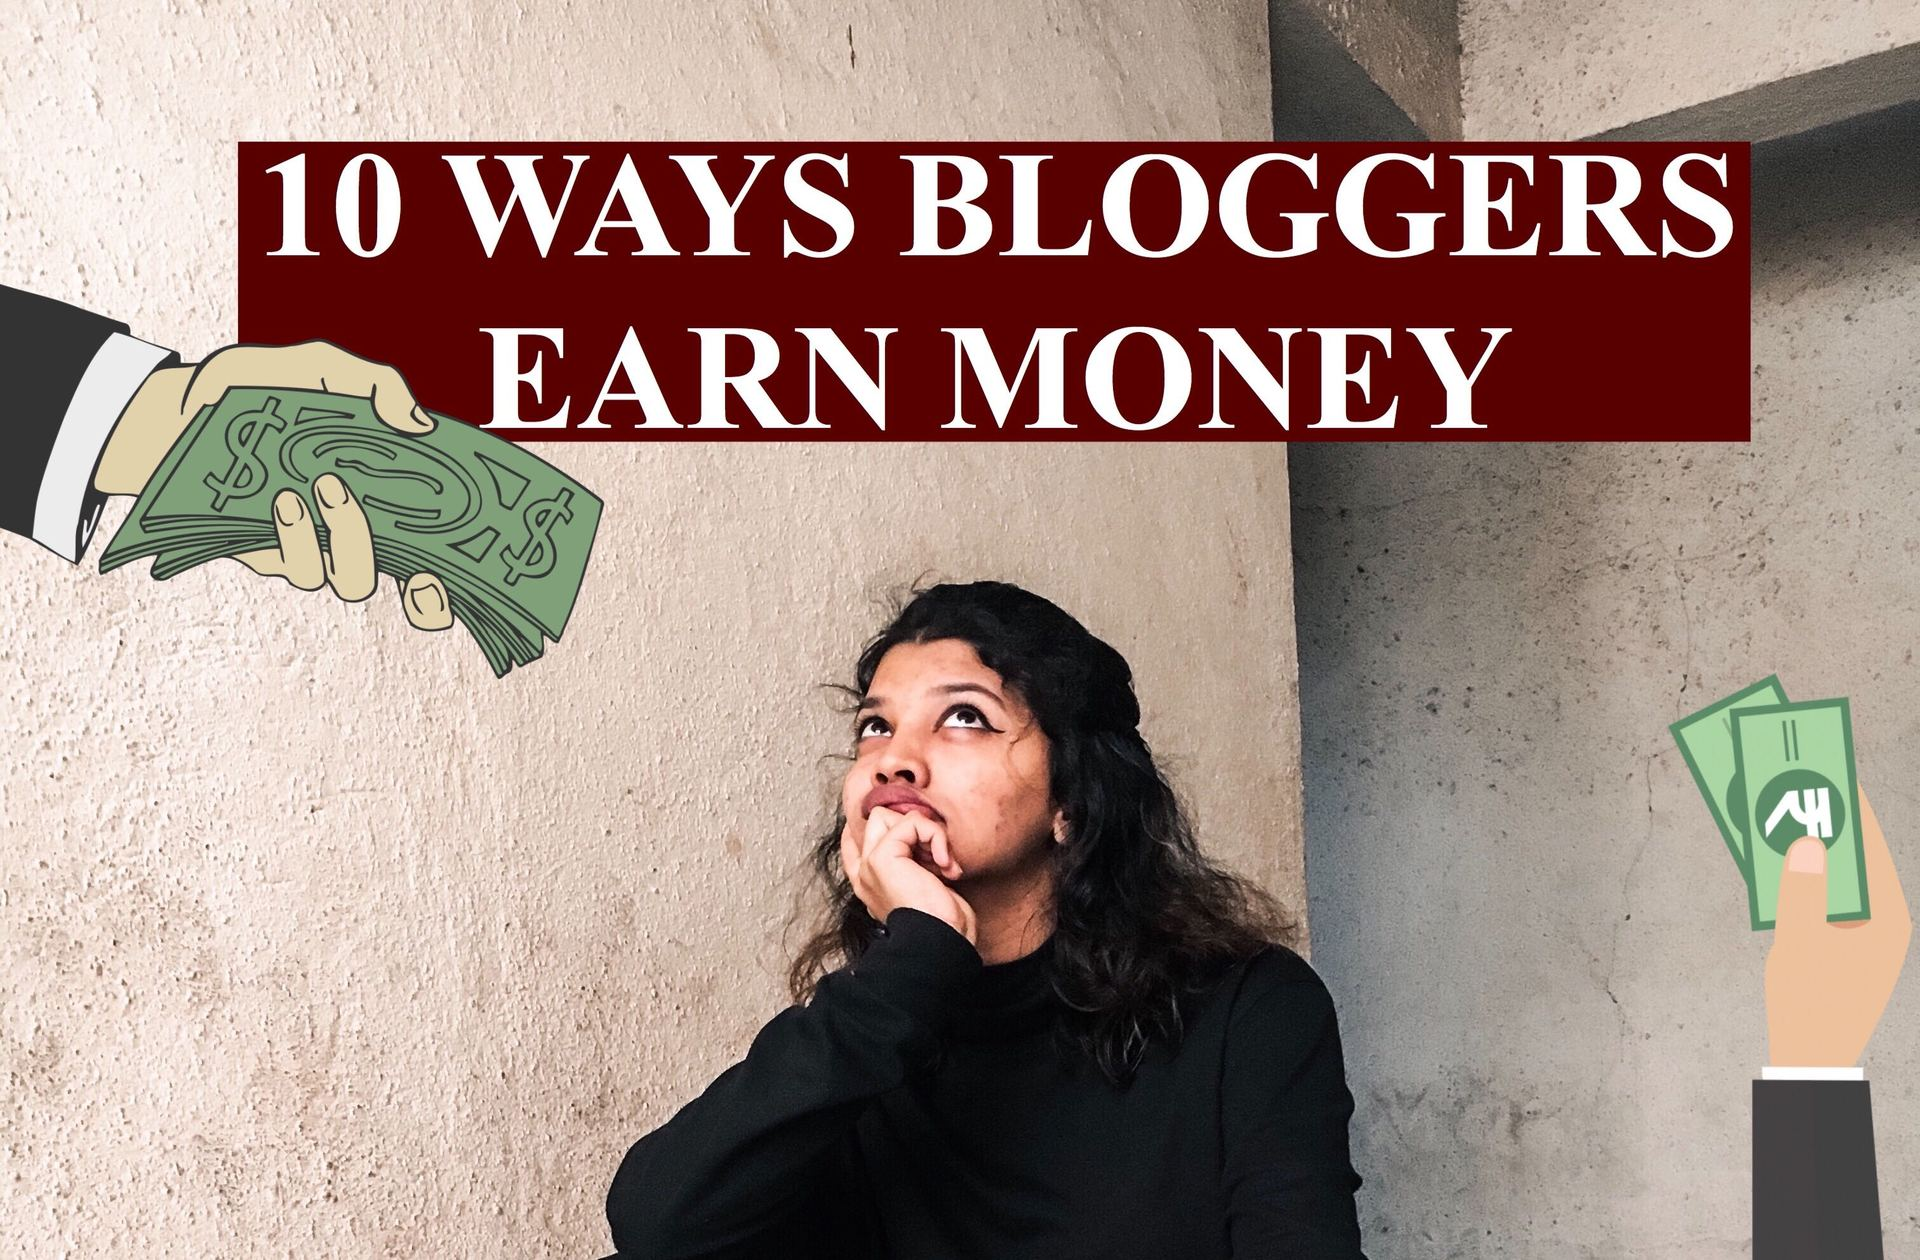 How do bloggers earn money? image